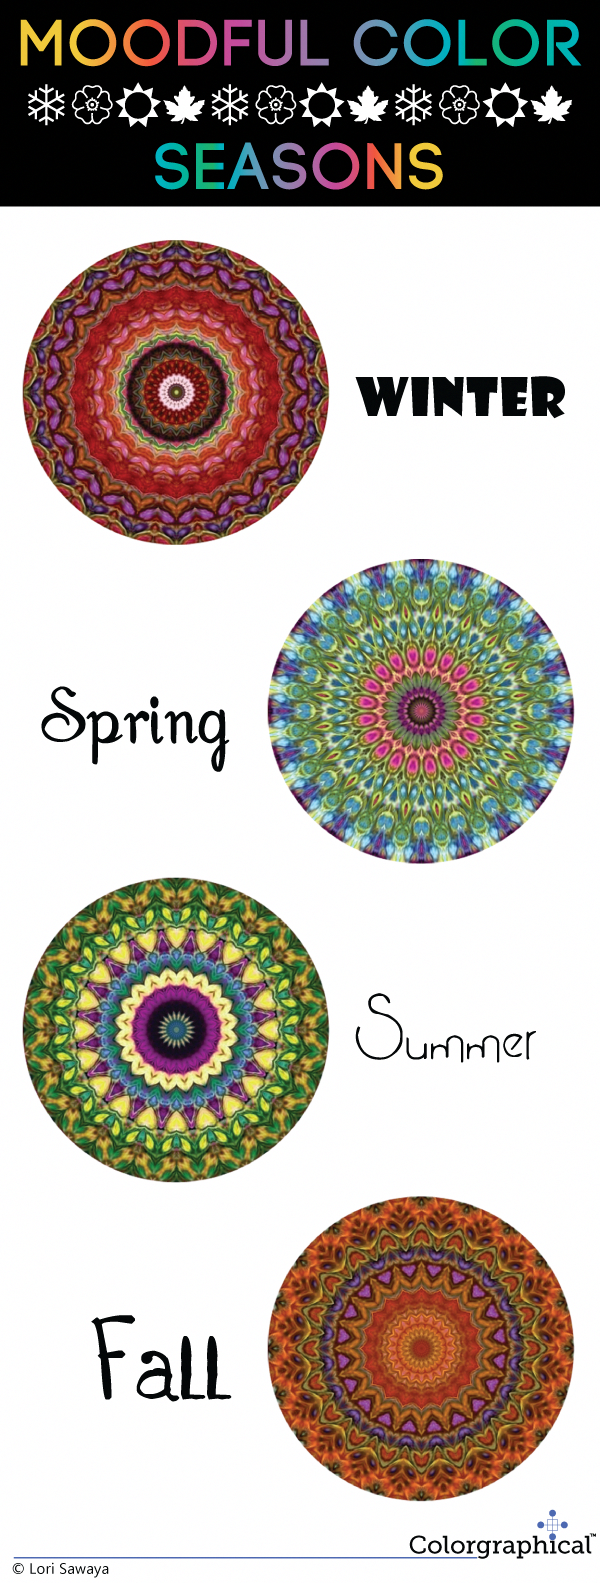 A new infographic plotting colors for the seasons. Mandalas are my chosen tool to help you relate to not only color in context but color in life. In this case, the colors of life season by season. #candlecolormeanings A new infographic plotting colors for the seasons. Mandalas are my chosen tool to help you relate to not only color in context but color in life. In this case, the colors of life season by season. #candlecolormeanings